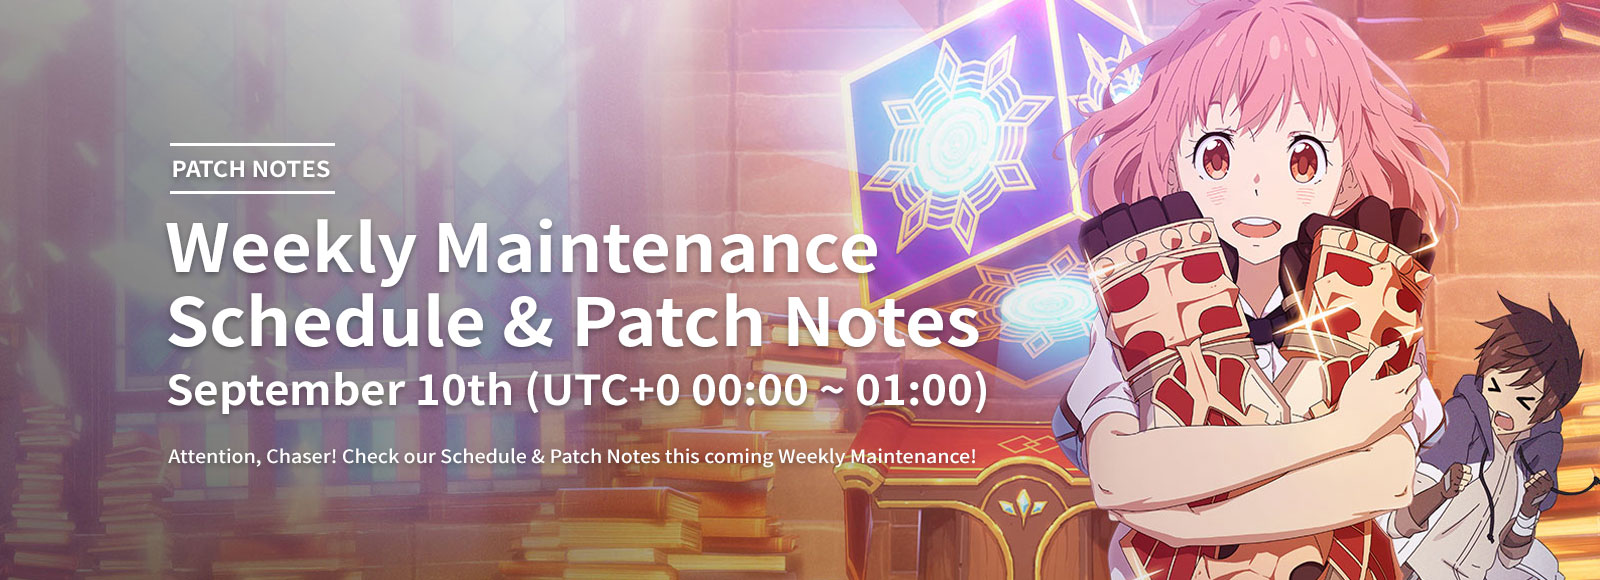 September 10th Weekly Maintenance Schedule & Patch Notes